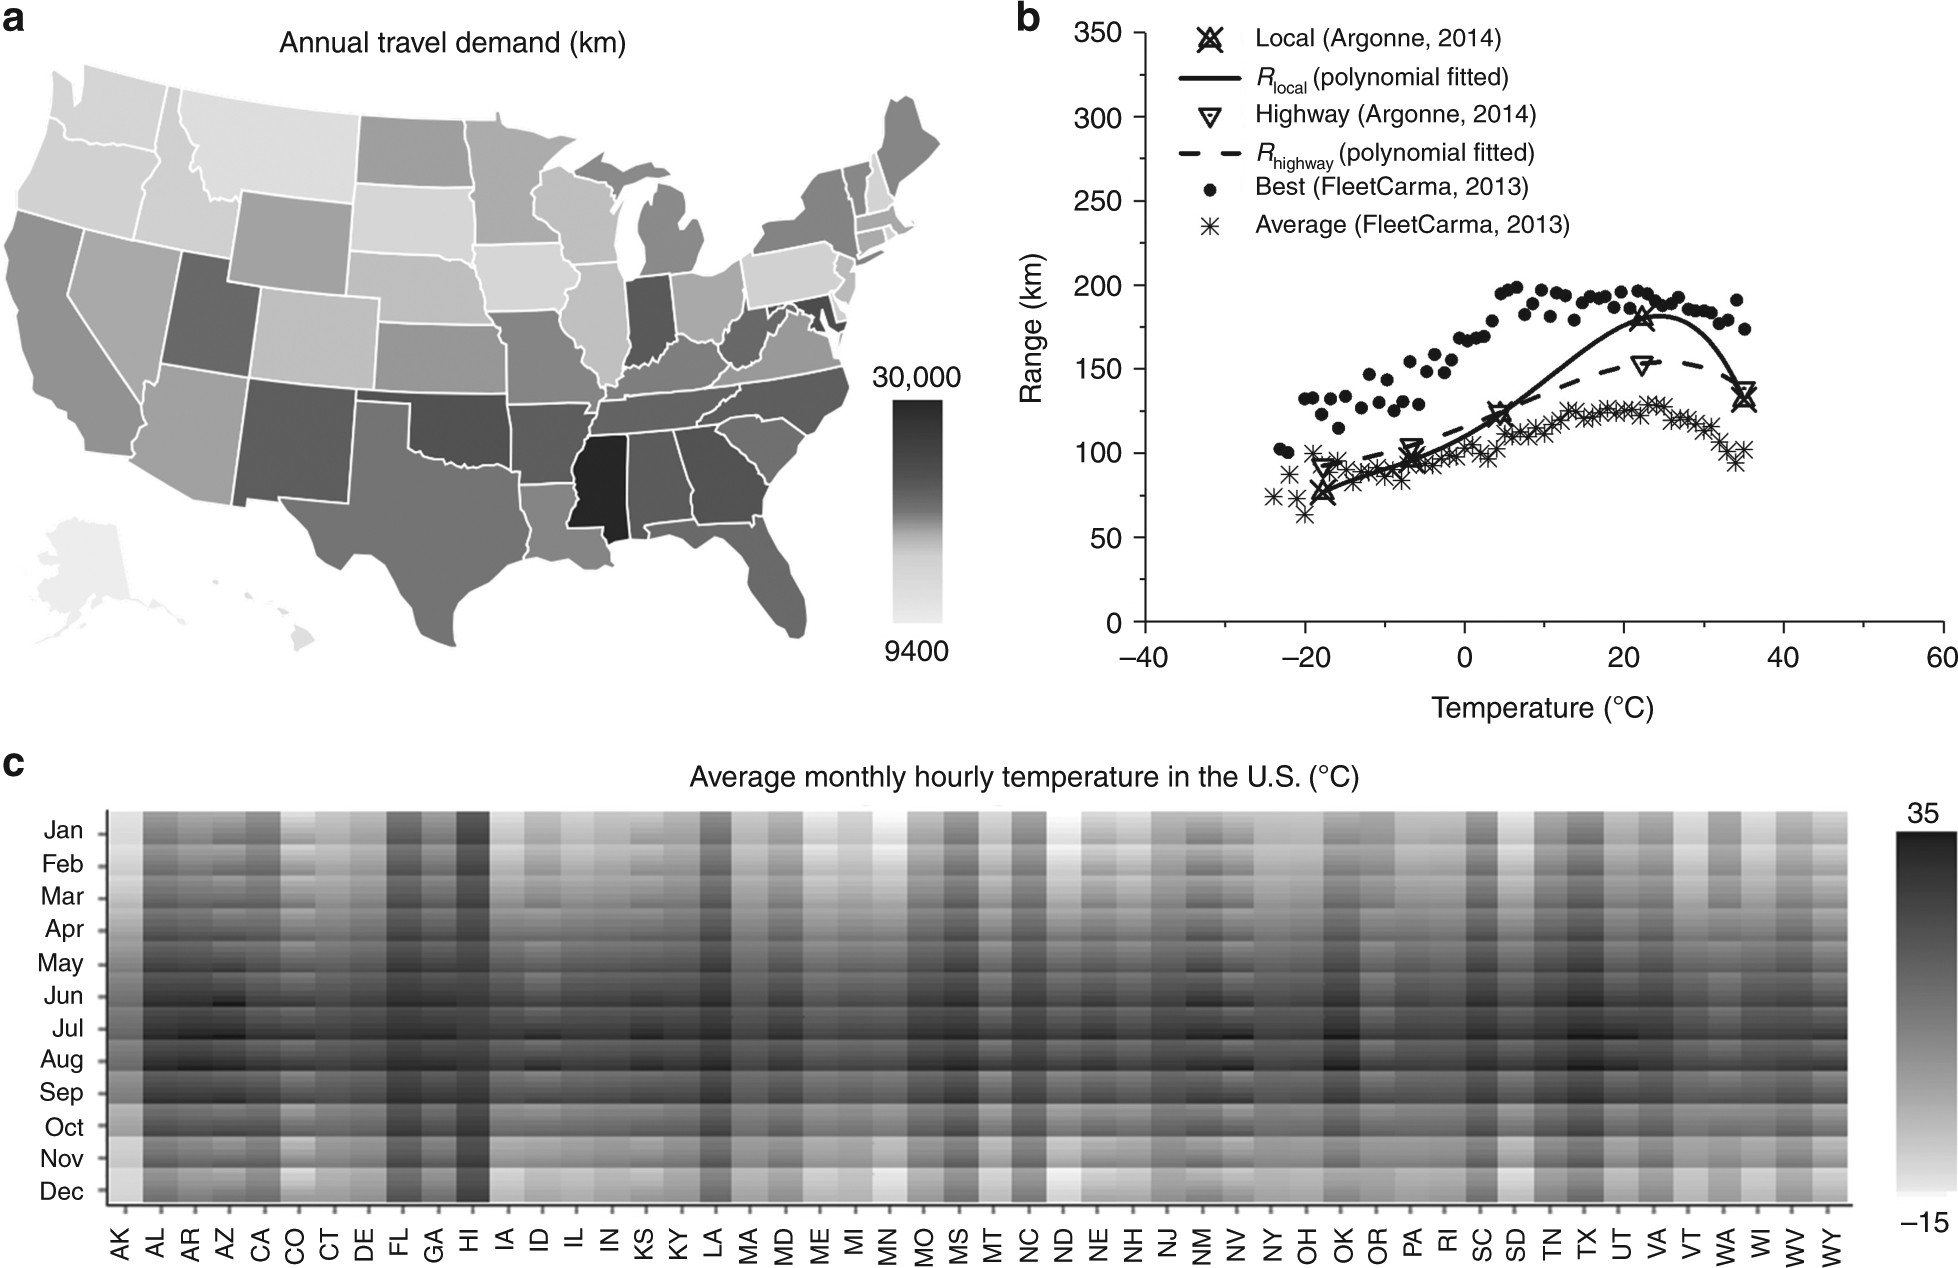 Predictive Modeling Of Battery Degradation And Greenhouse Gas Ev Range Extending Adding A 2nd Hv Emissions From Us State Level Electric Vehicle Operation Nature Communications